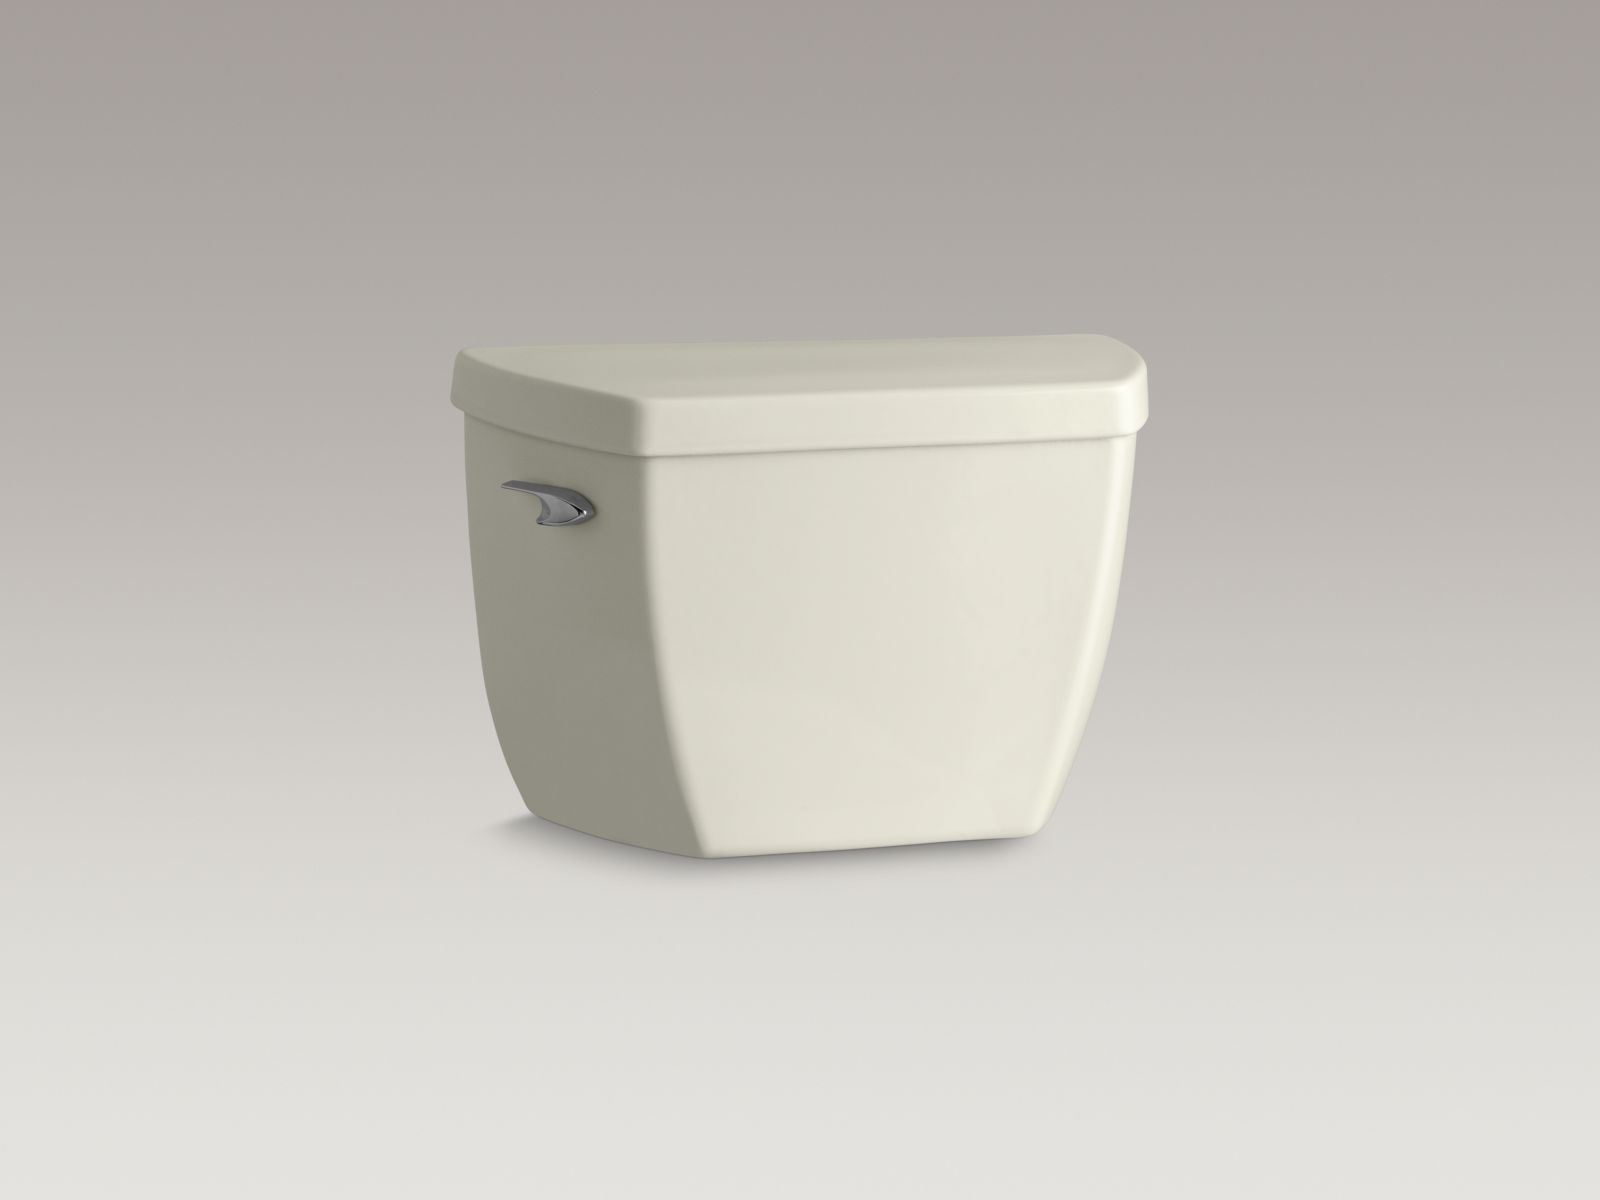 Kohler K-4645-T-96 Highline Classic 1.6 GPF Pressure Lite Toilet Tank with Left-hand Trip Lever and Cover Locks Biscuit